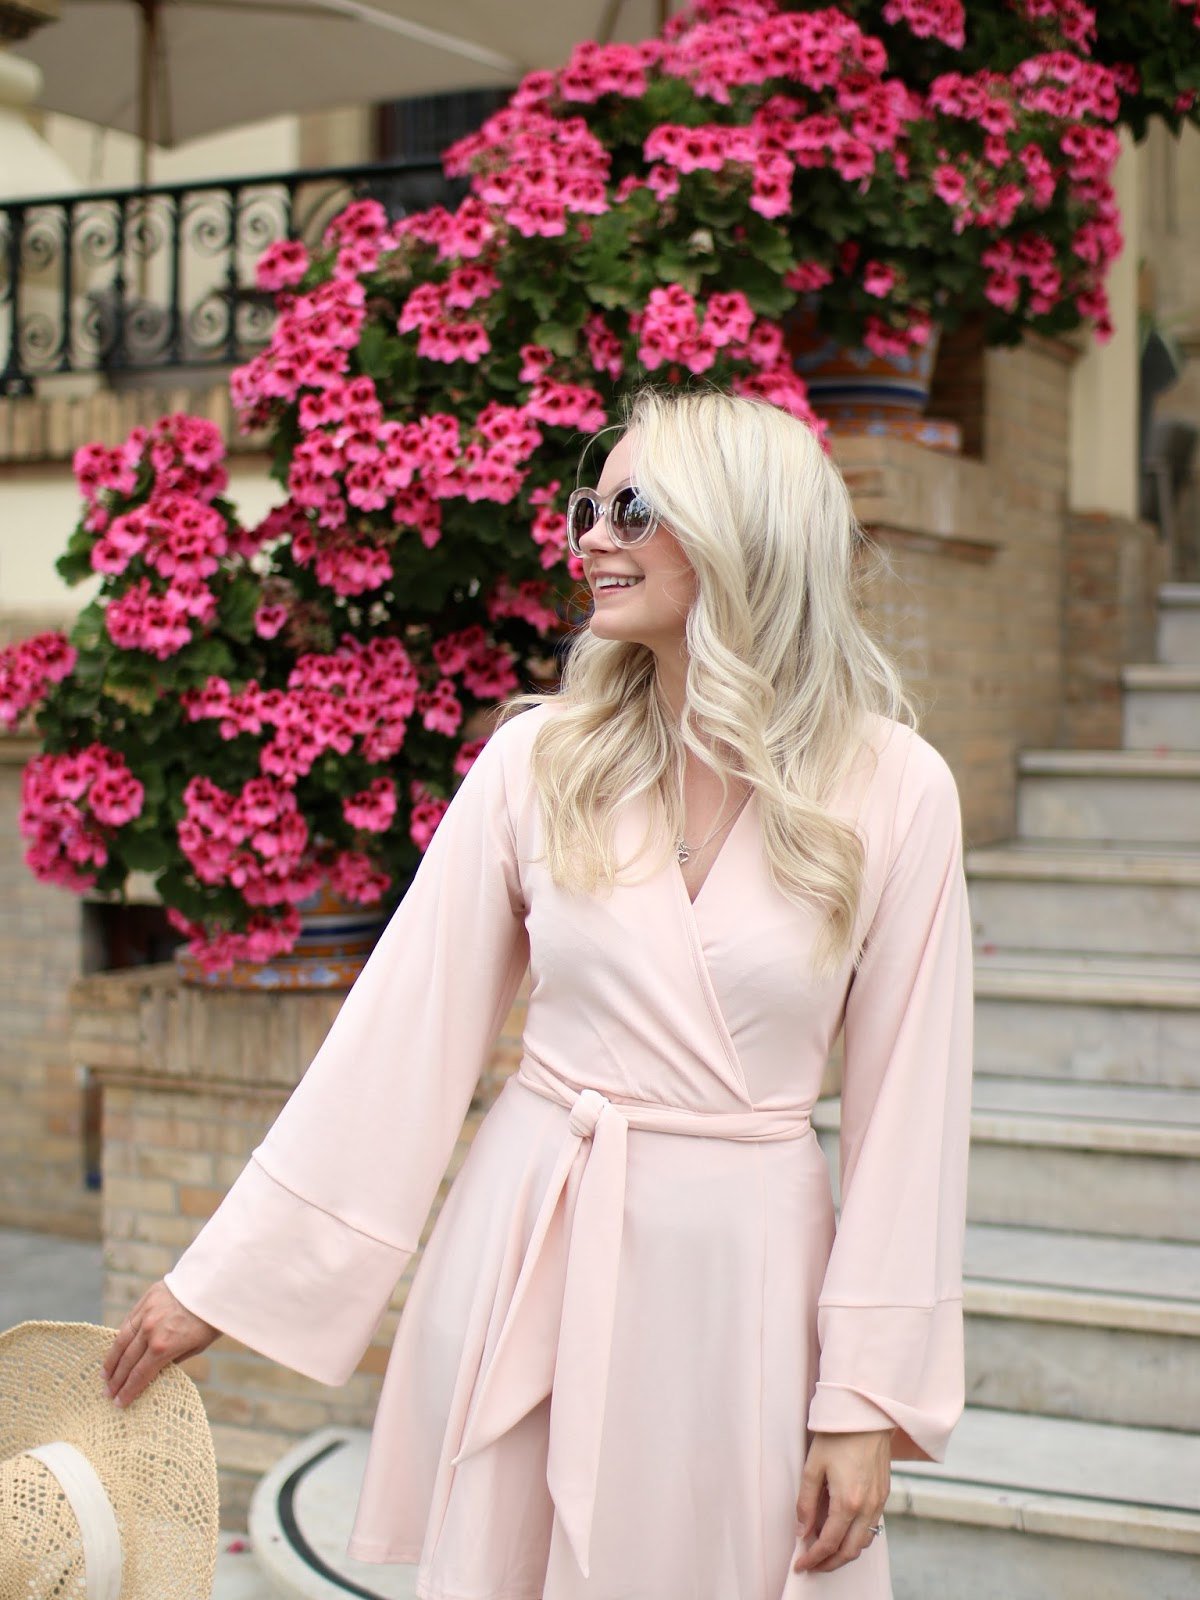 blush aline dress from asos